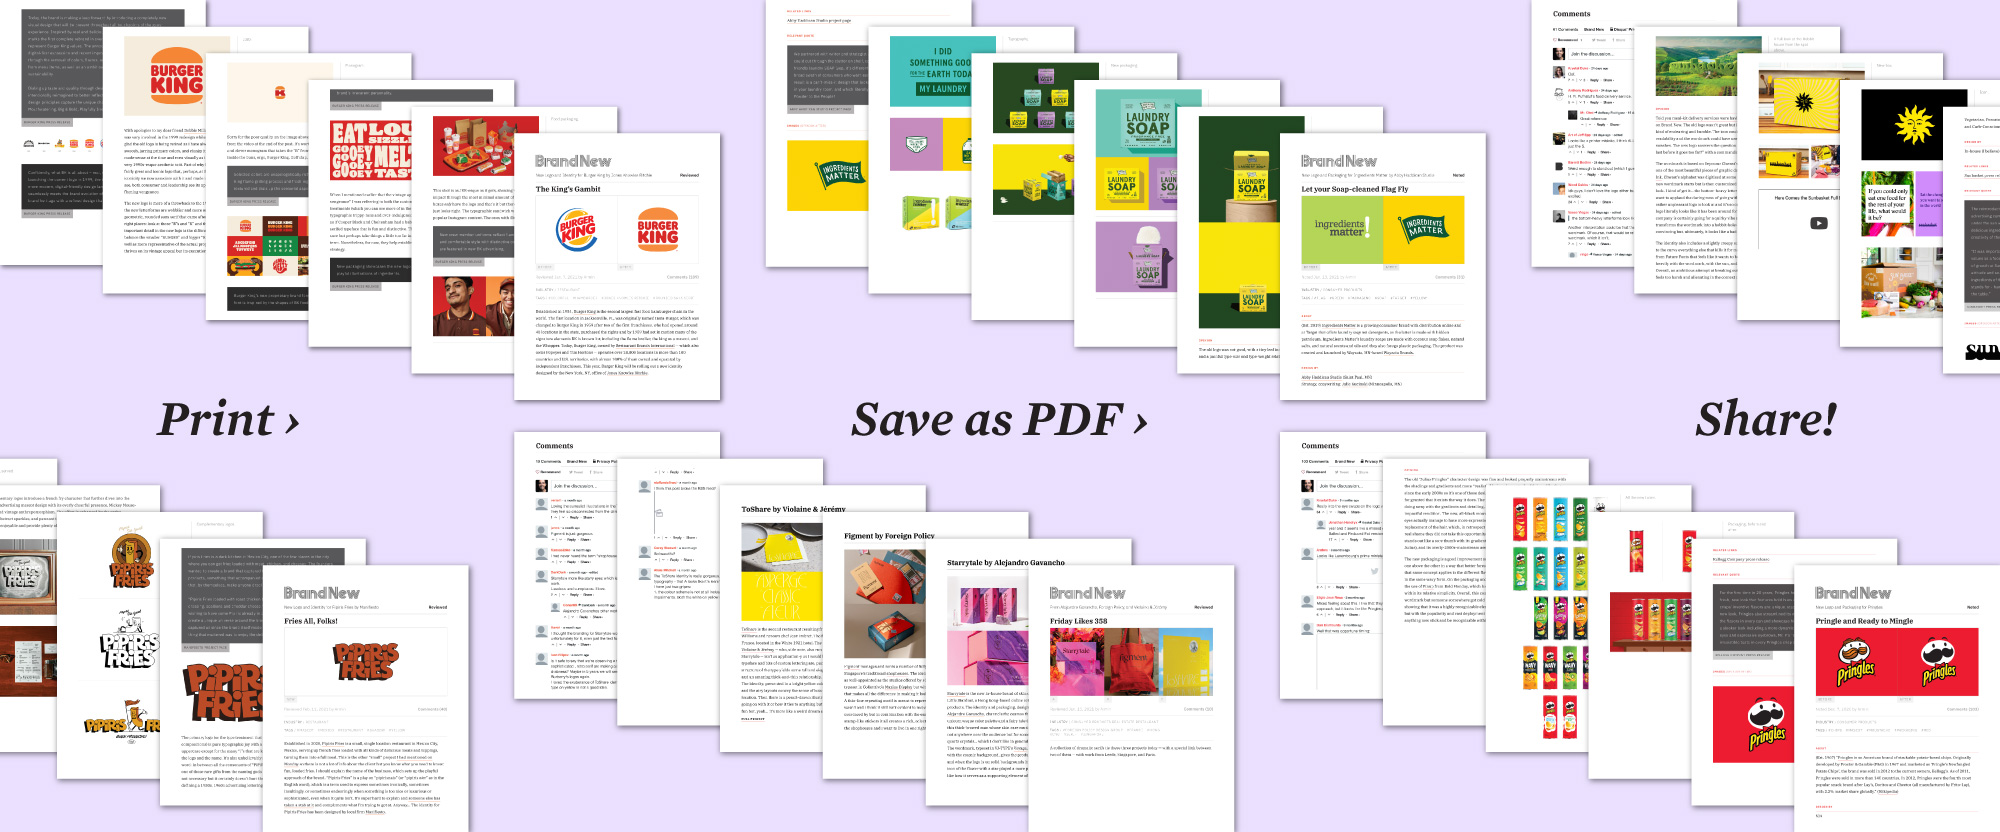 Share Posts as PDFs